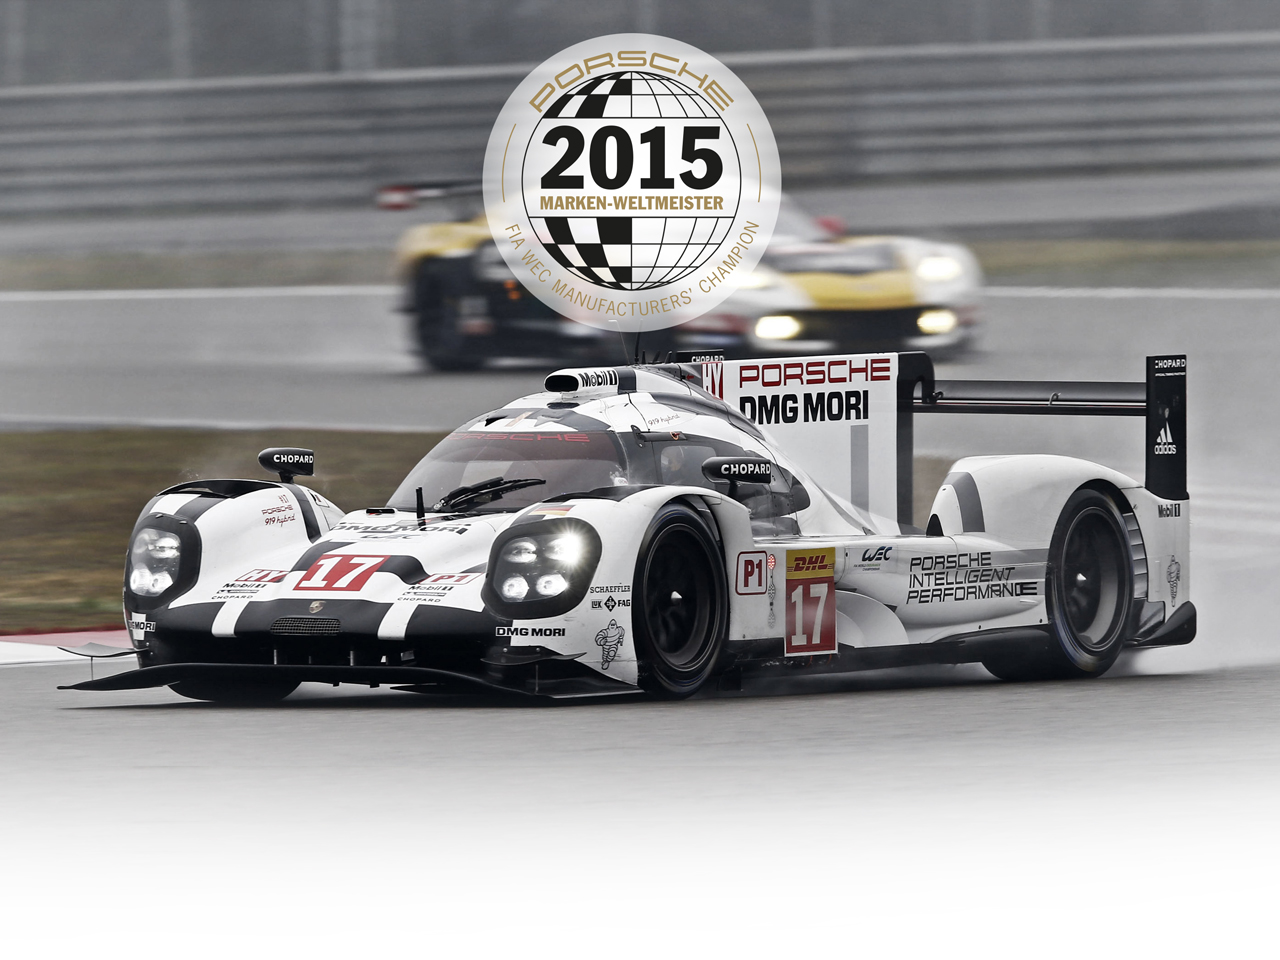 Porsche FIA WEC 6h of Shanghai: Porsche secures World Championship title by another one-two win